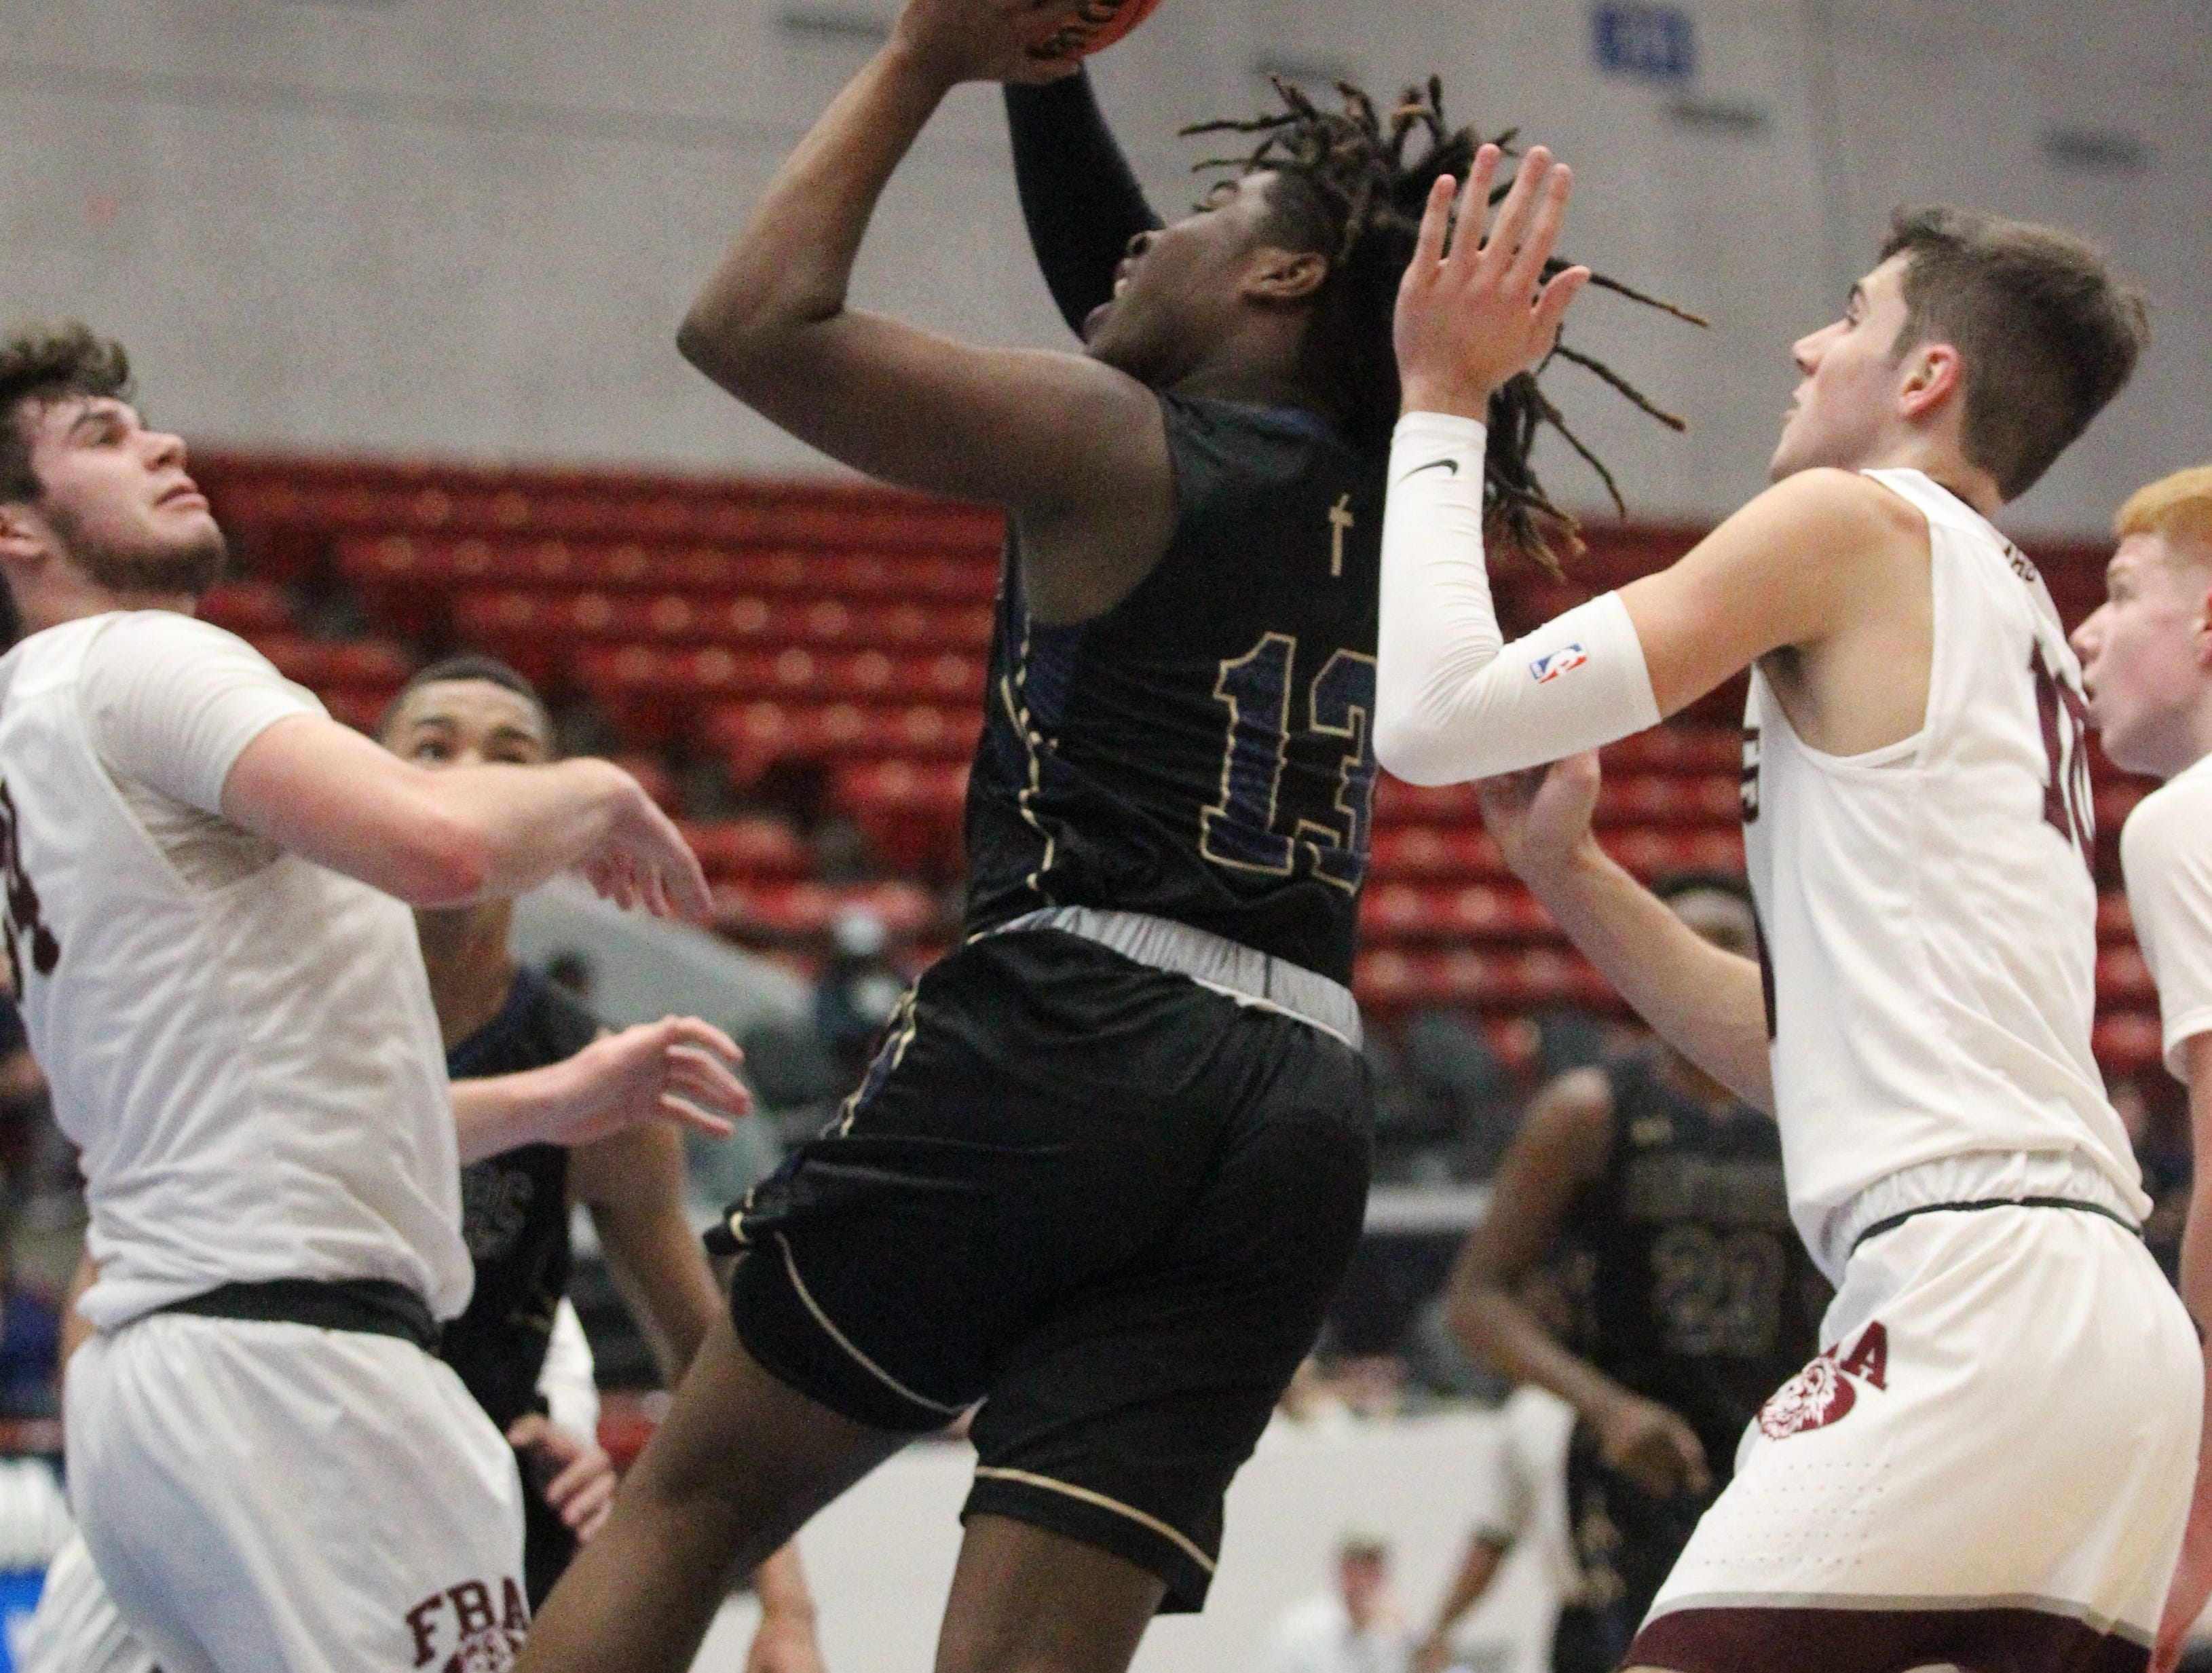 St. John Paul II beat First Baptist Academy 55-37 during a Class 3A state championship game at the RP Funding Center in Lakeland on March 4, 2019.